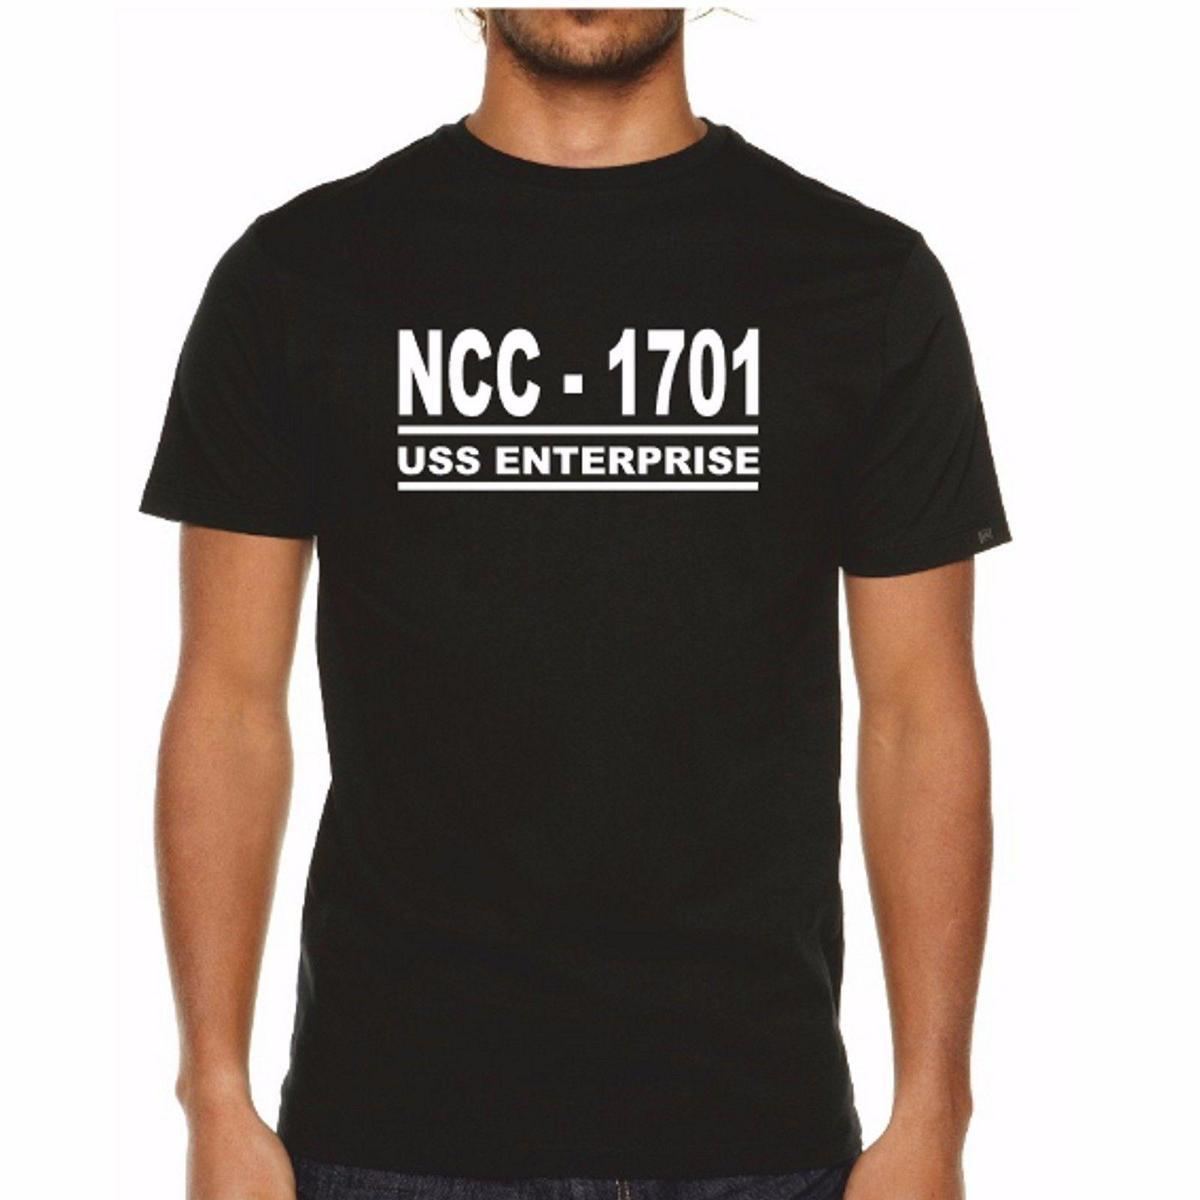 3c7be6fd NCC 1701 TShirt USS Enterprise Star Trek Spock Captain Kirk Present Gift  Shop For T Shirts Online T Shirt With A T Shirt On It From Yuxin0006, ...